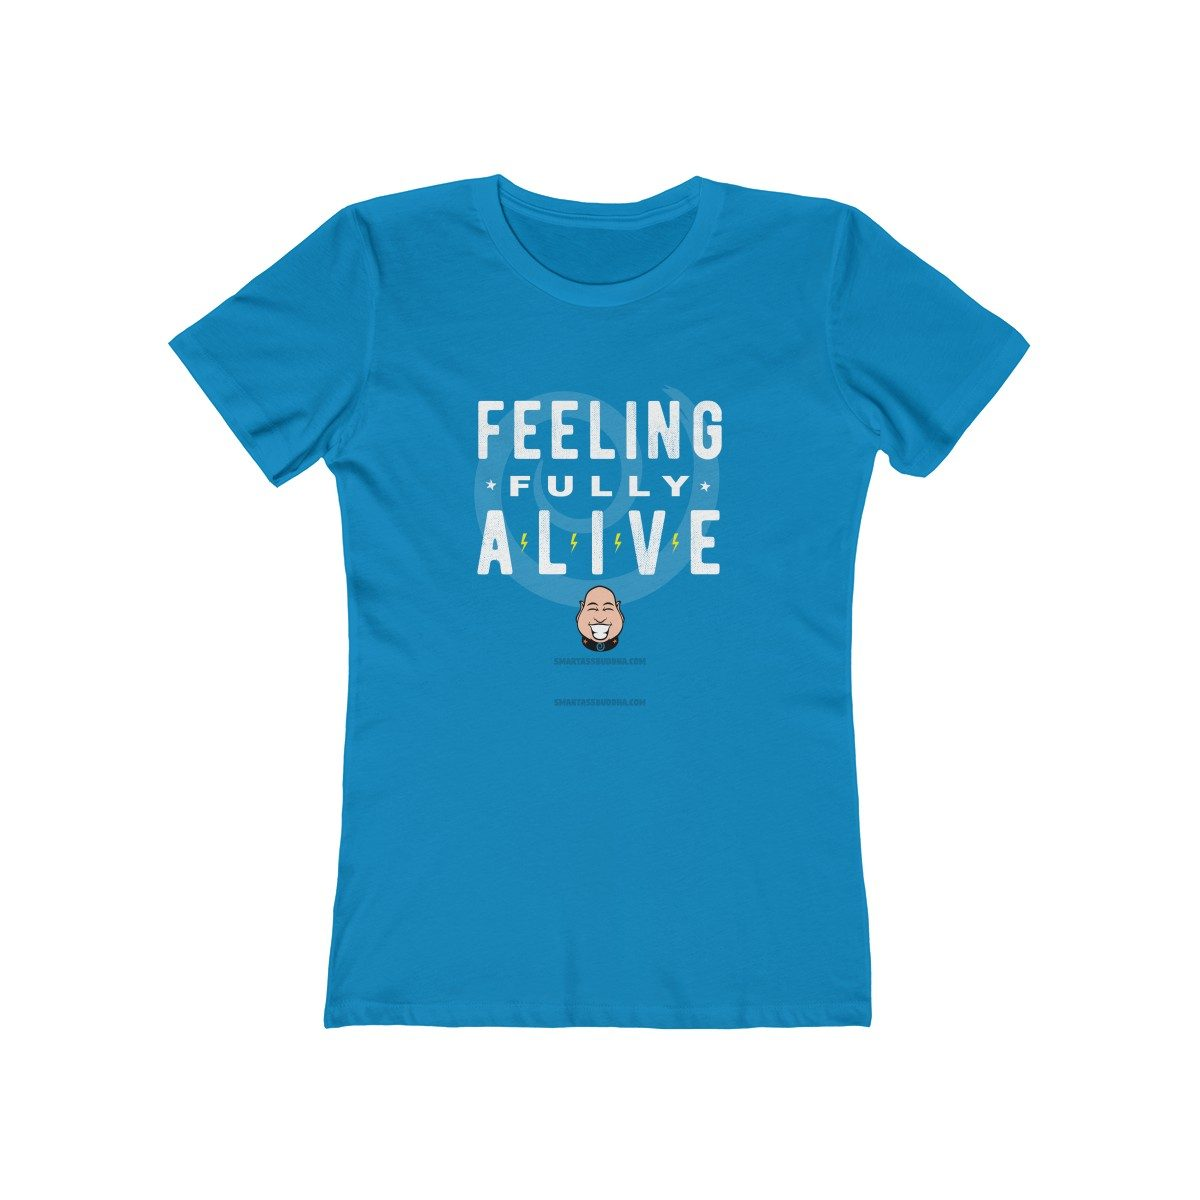 feeling-fully-alive-ladies-tshirt-with-sayings-for-women-funky-cool-gift-blue